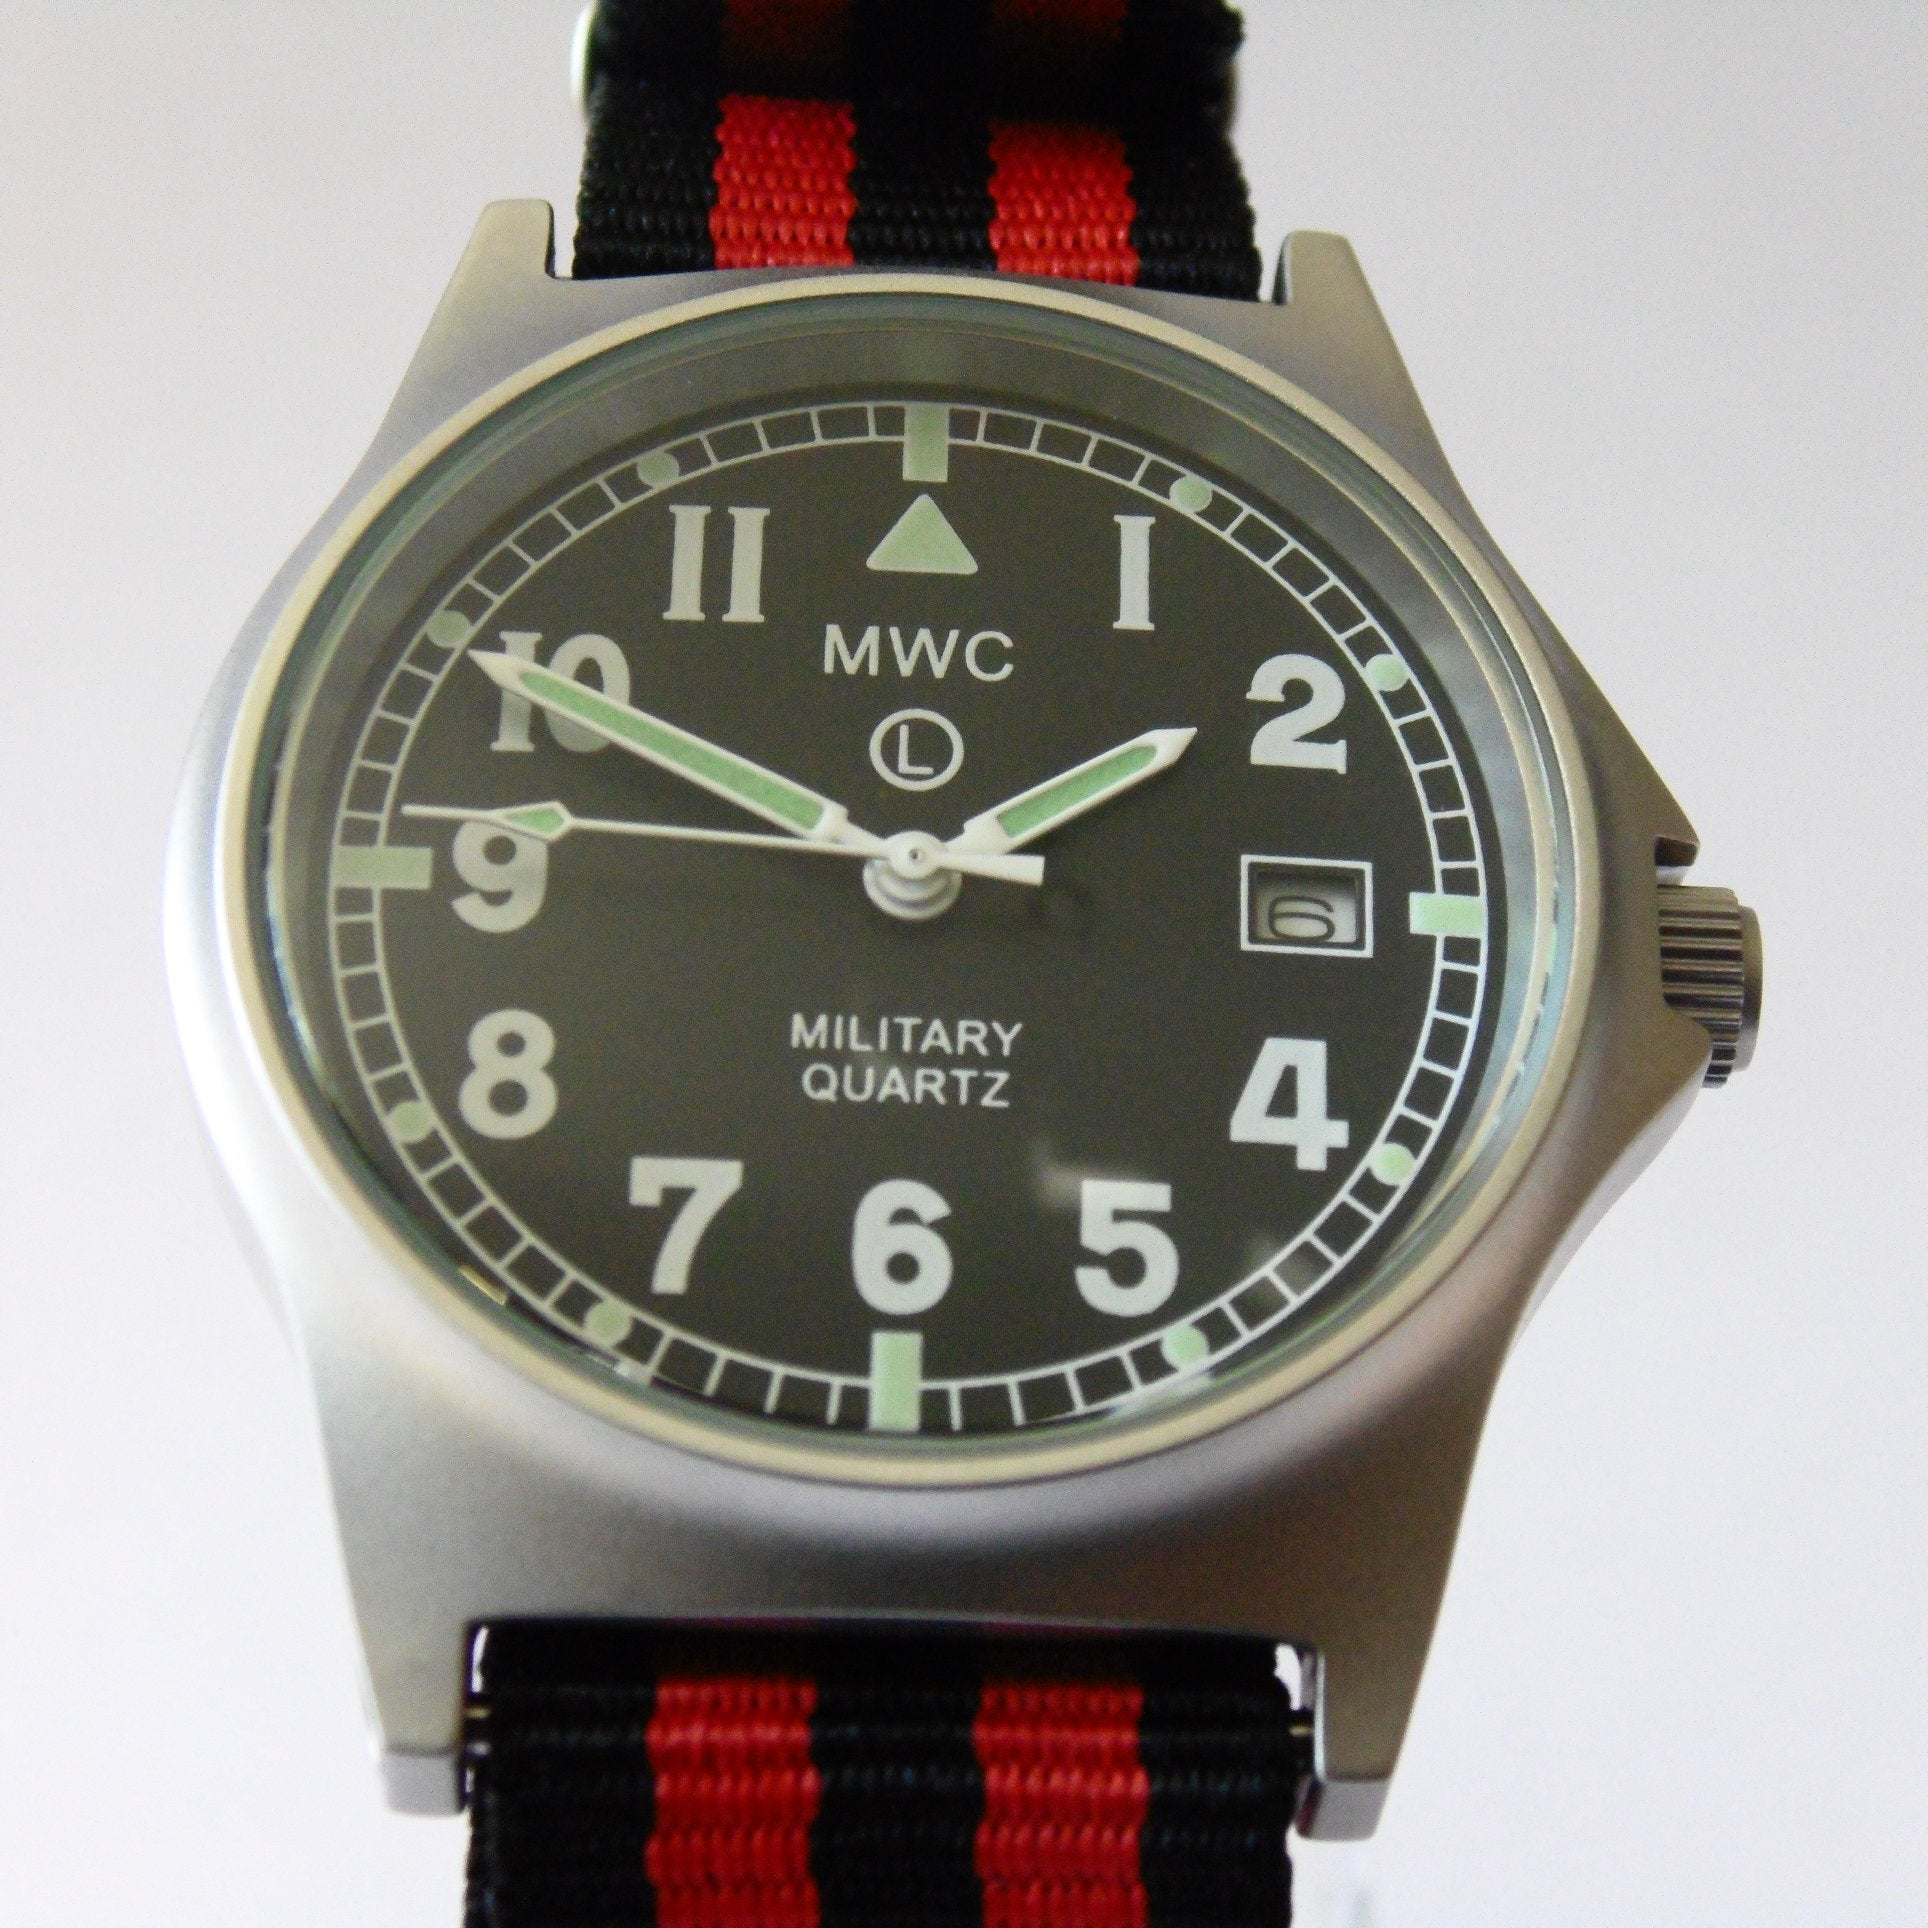 MWC G10 LM Military Watch (Luftwaffe Strap) - Watchfinder General - UK suppliers of Russian Vostok Parnis Watches MWC G10  - 1